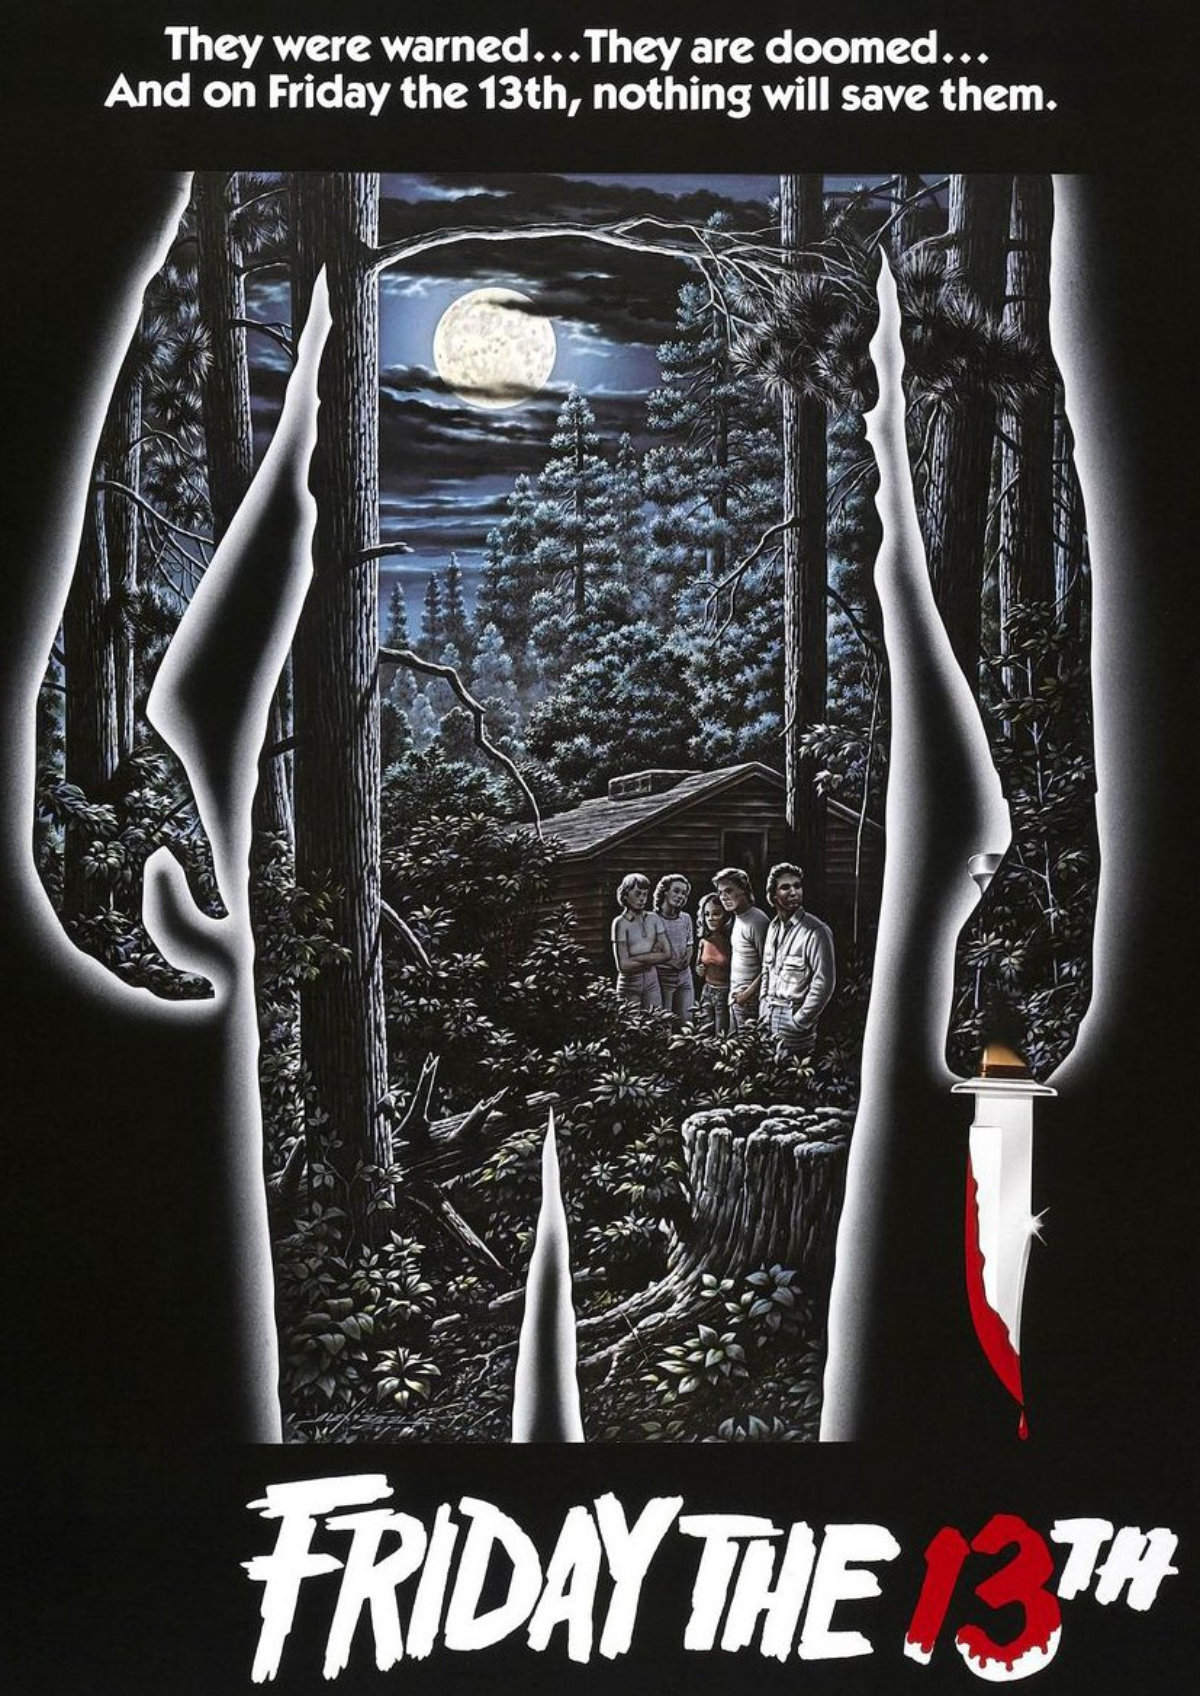 'Friday the 13th' movie poster